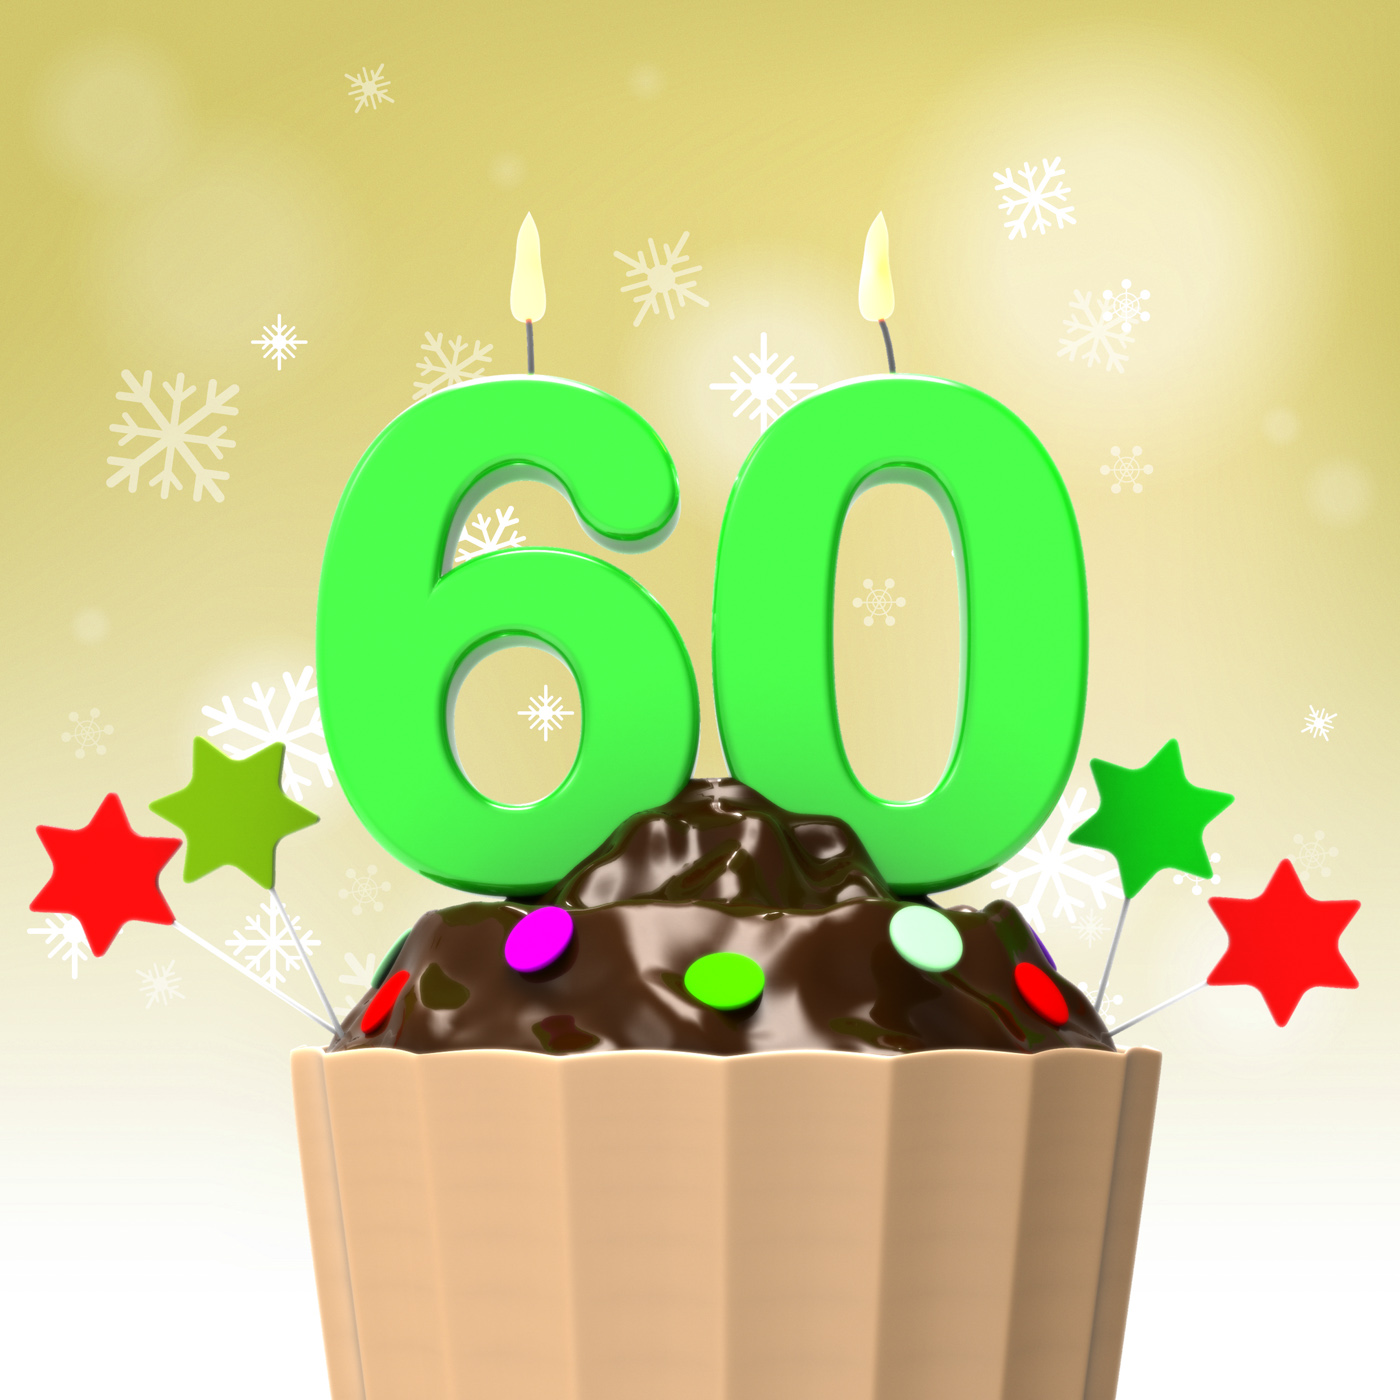 Sixty candle on cupcake shows family reunion or celebration photo